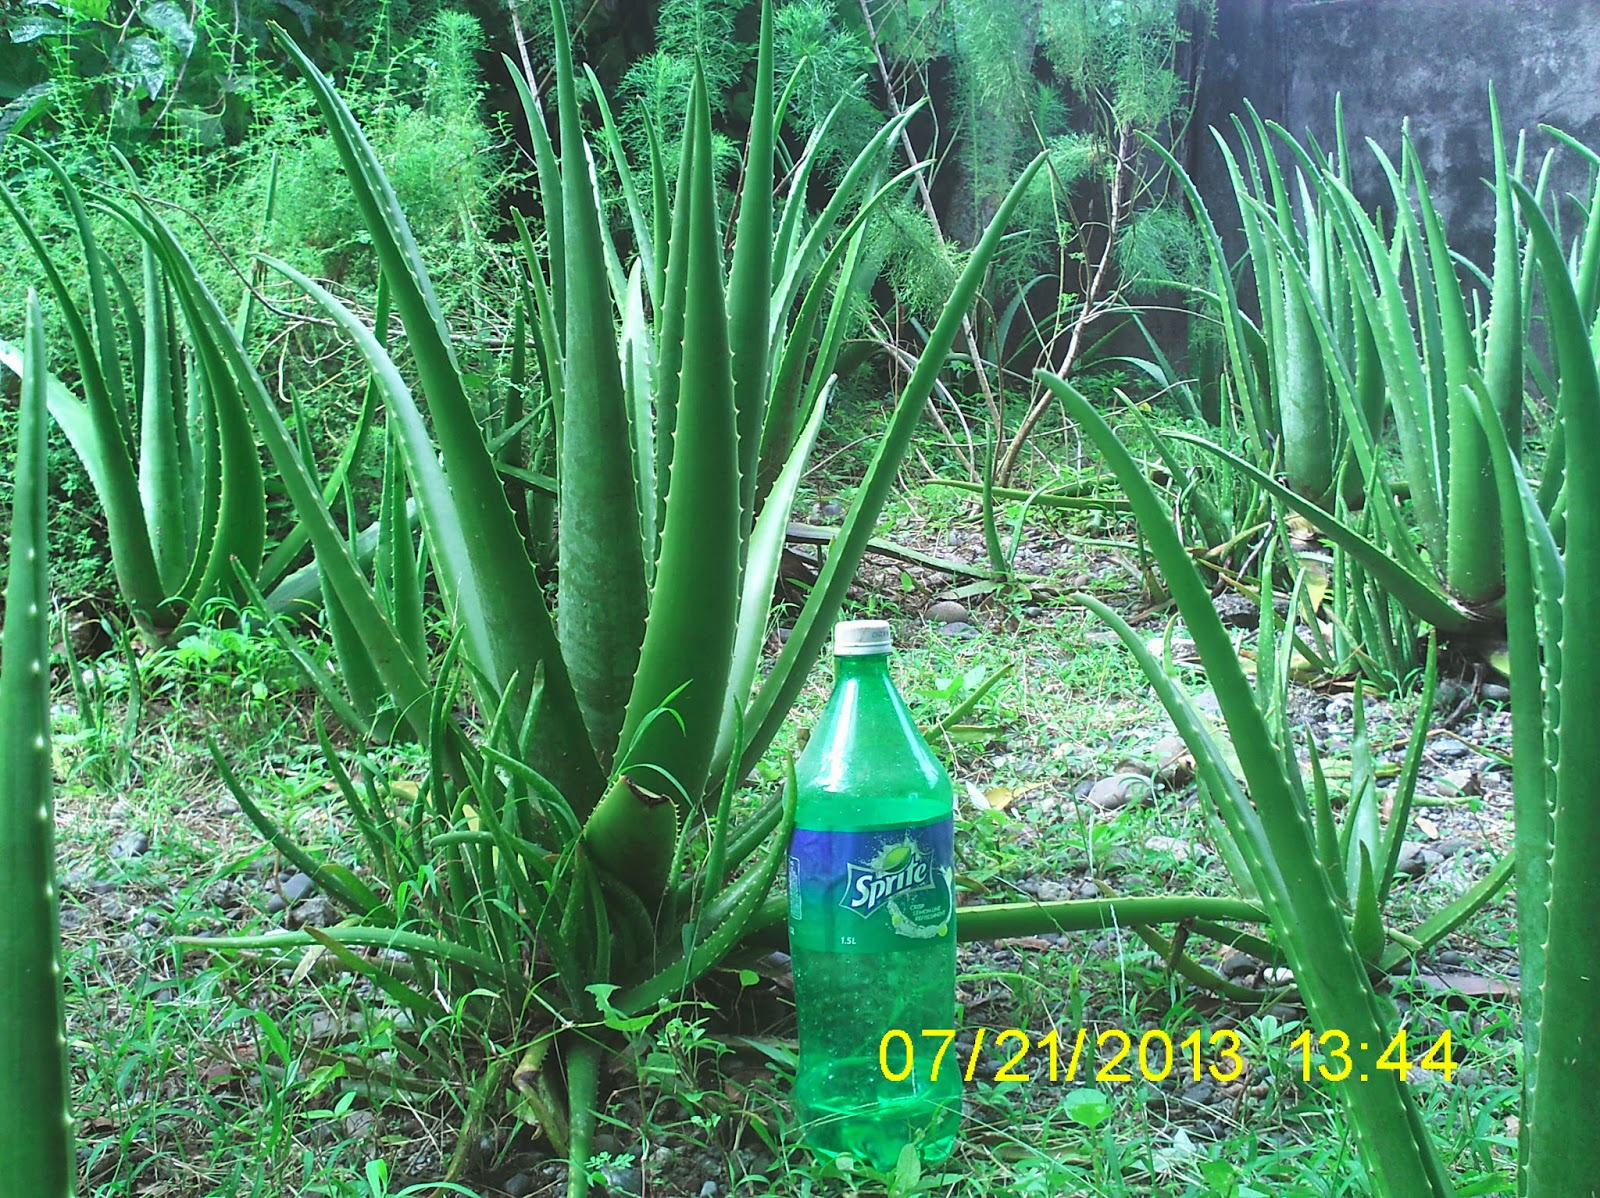 aloe barbadensis Aloe barbadensis description aloe barbadensis is also called barbados aloe it is considered one of the most potent sources of aloe and it is used in many.